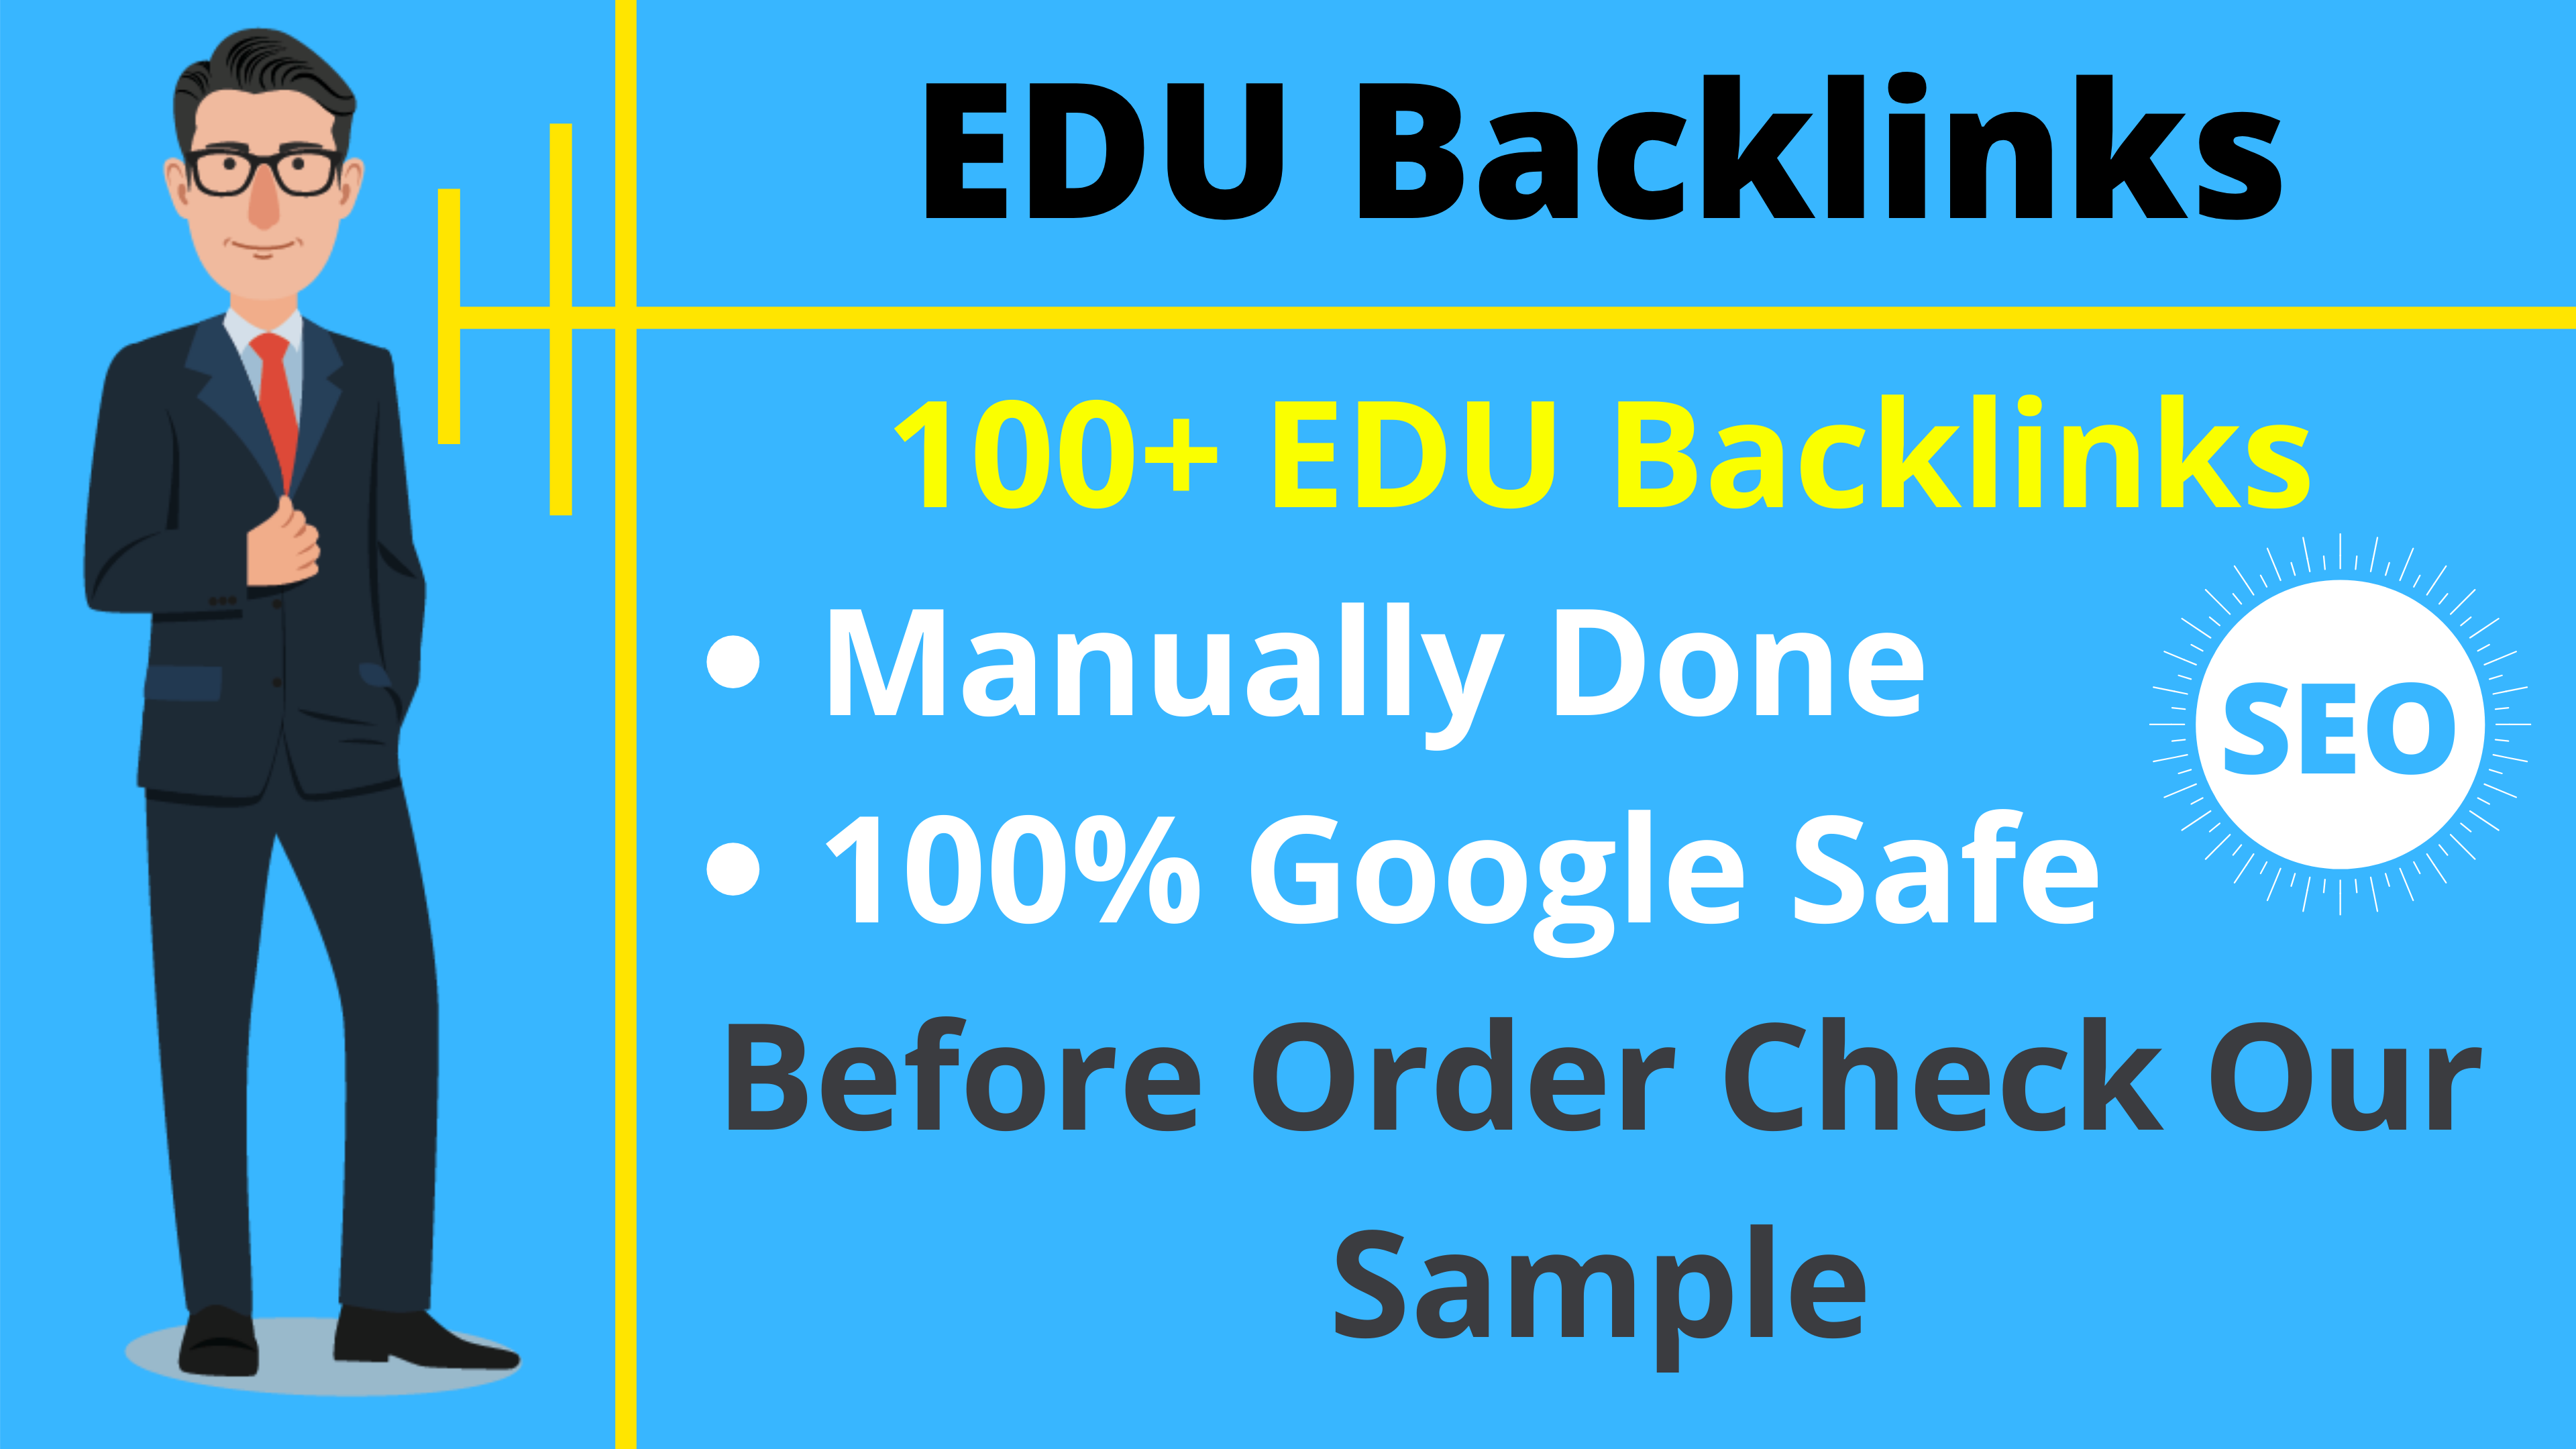 100+ EDU Site Backlink Cheap Price Limited Time Offer SEO Backlinks